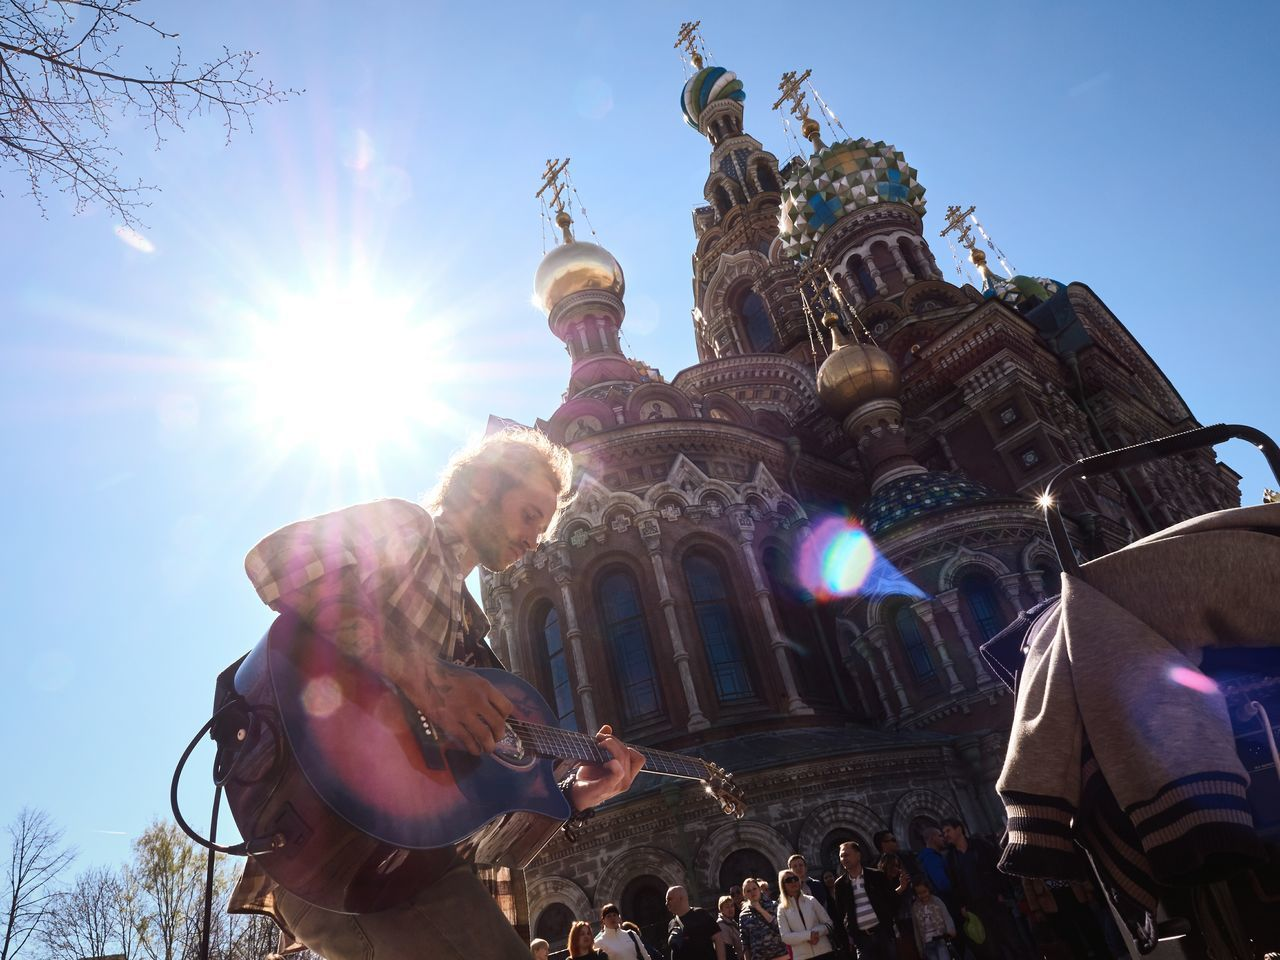 Low angle view of musician in russia